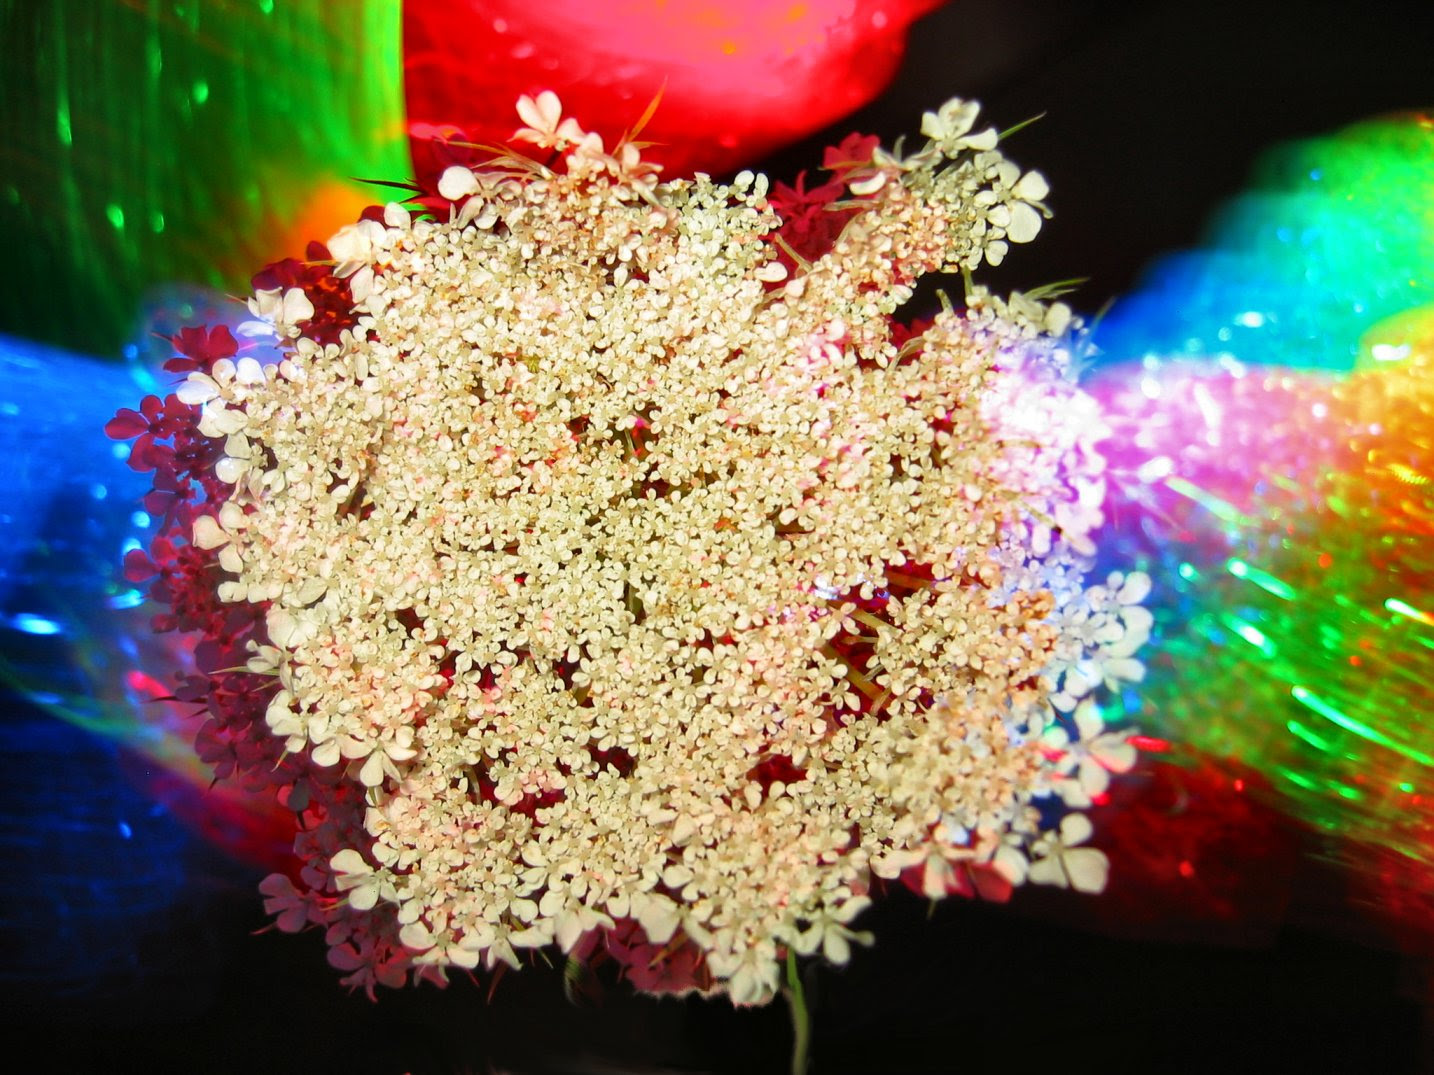 Queen Anne's Lace Flower LED Photo Art for the new Soul Amp Tune